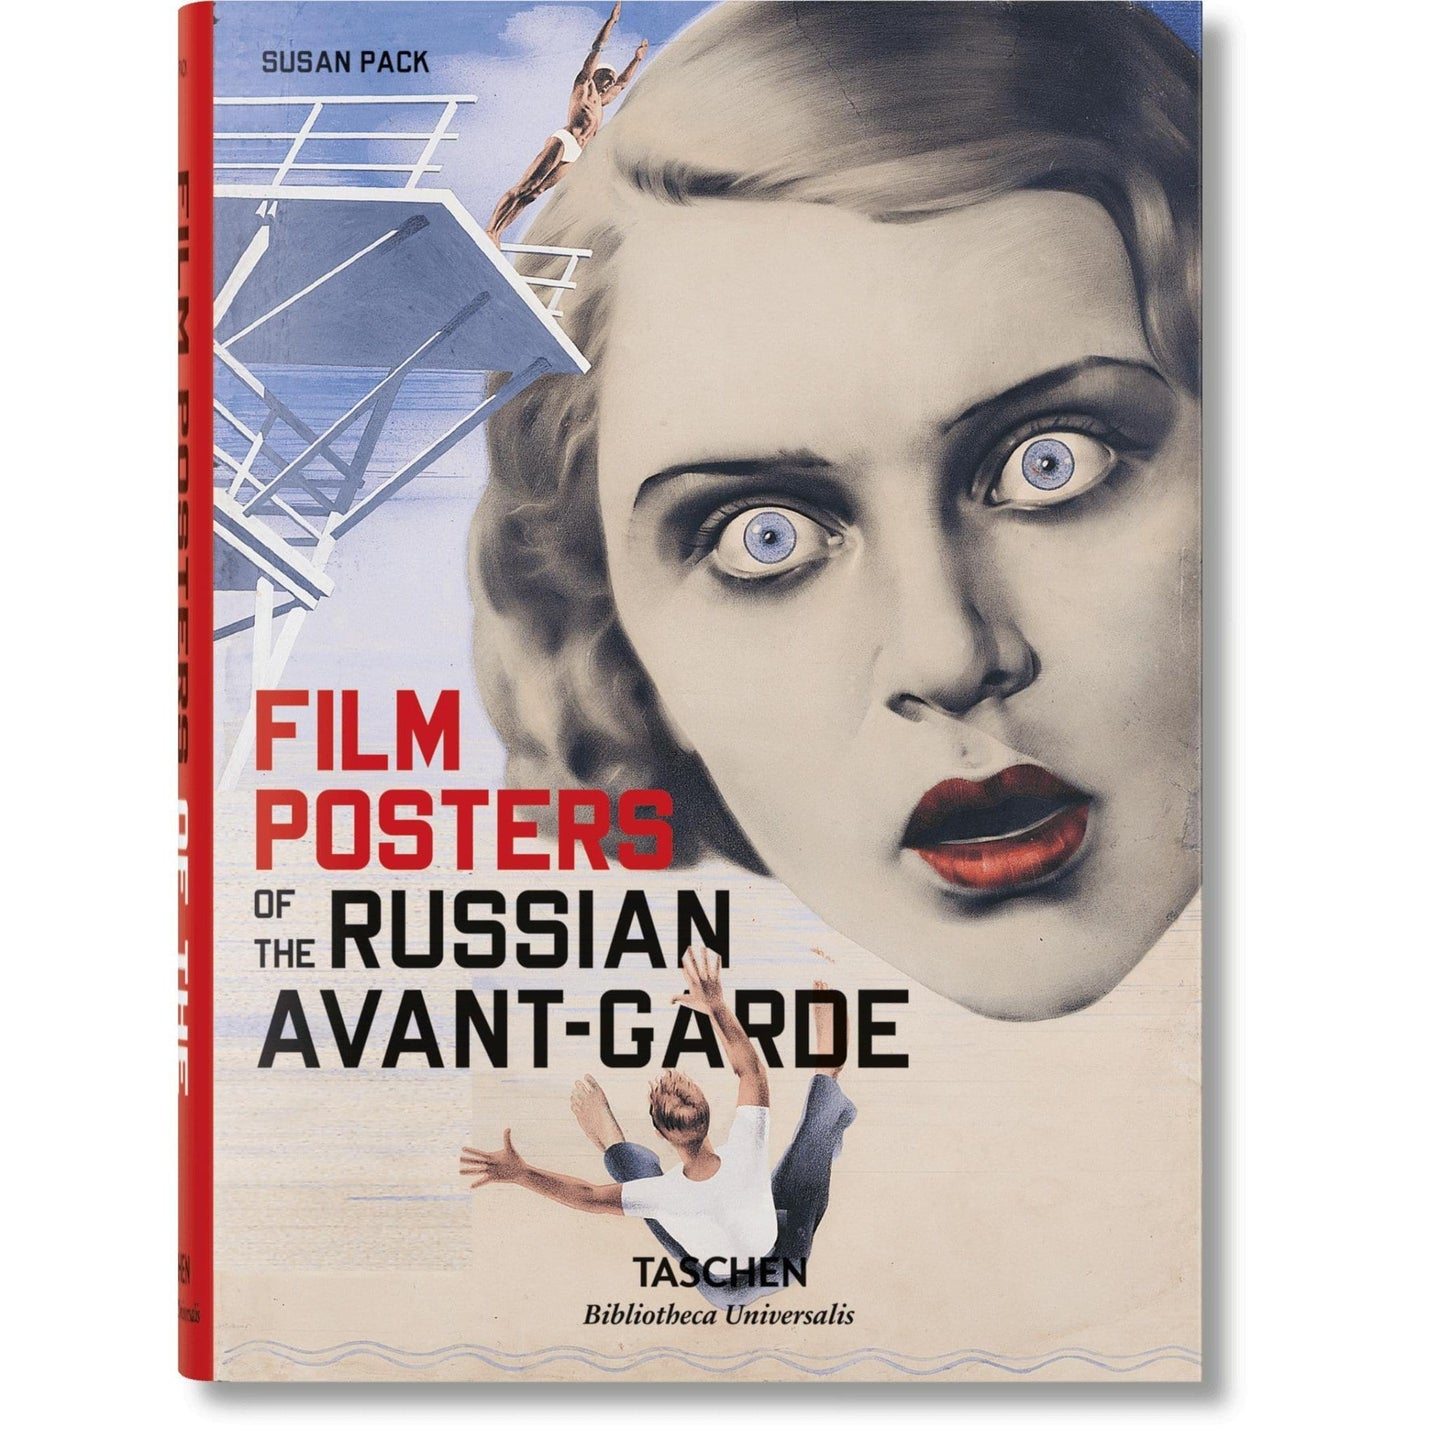 Taschen Film Posters of the Russian Avant-Garde / Neighborhood Goods